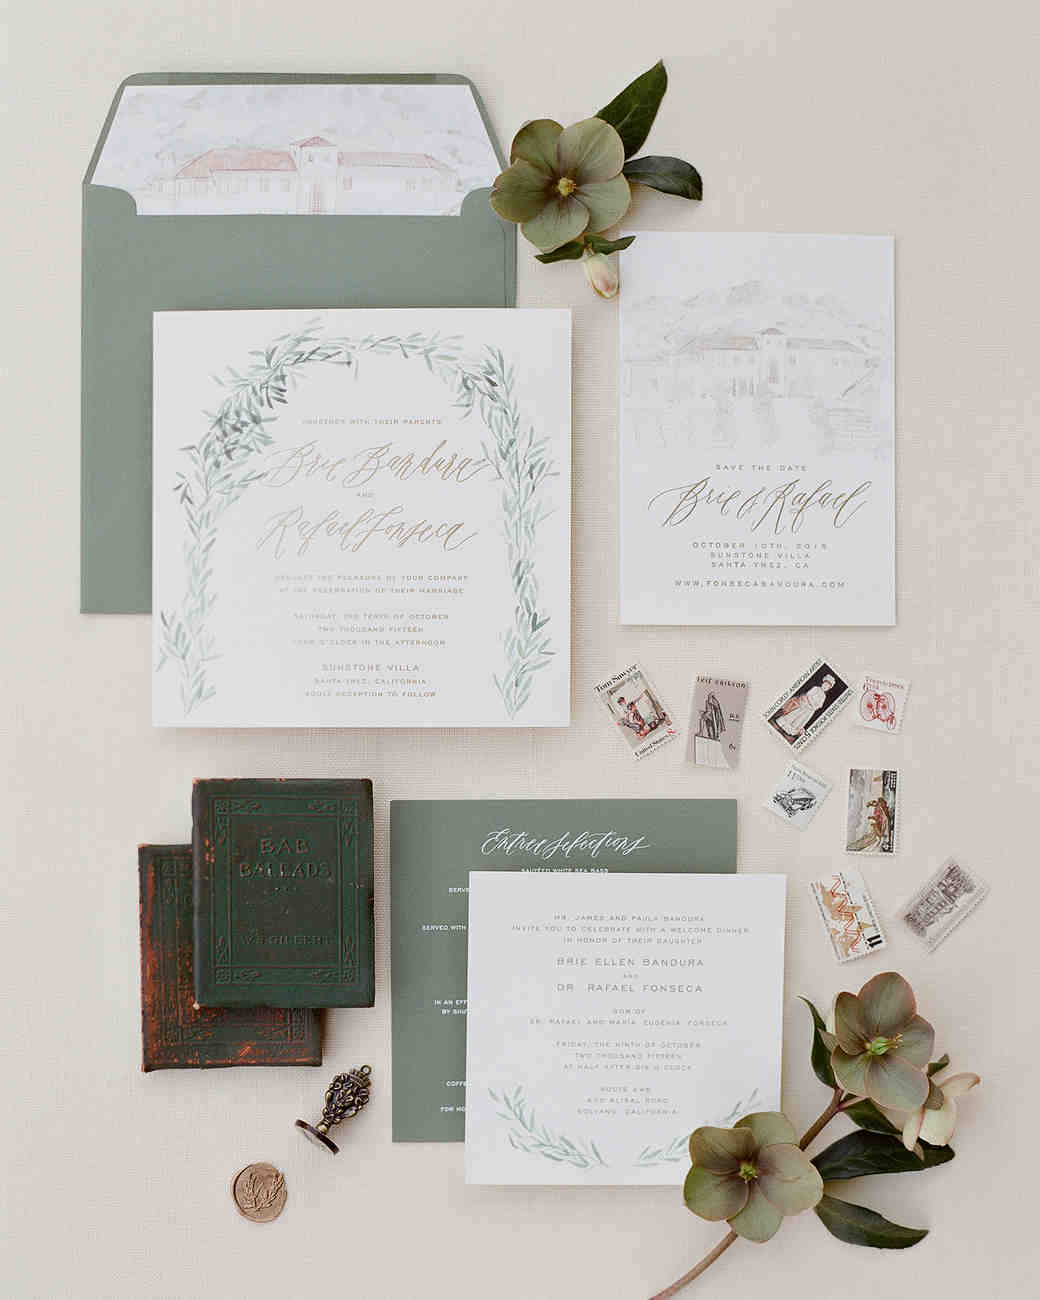 invitation suite with venue illustration